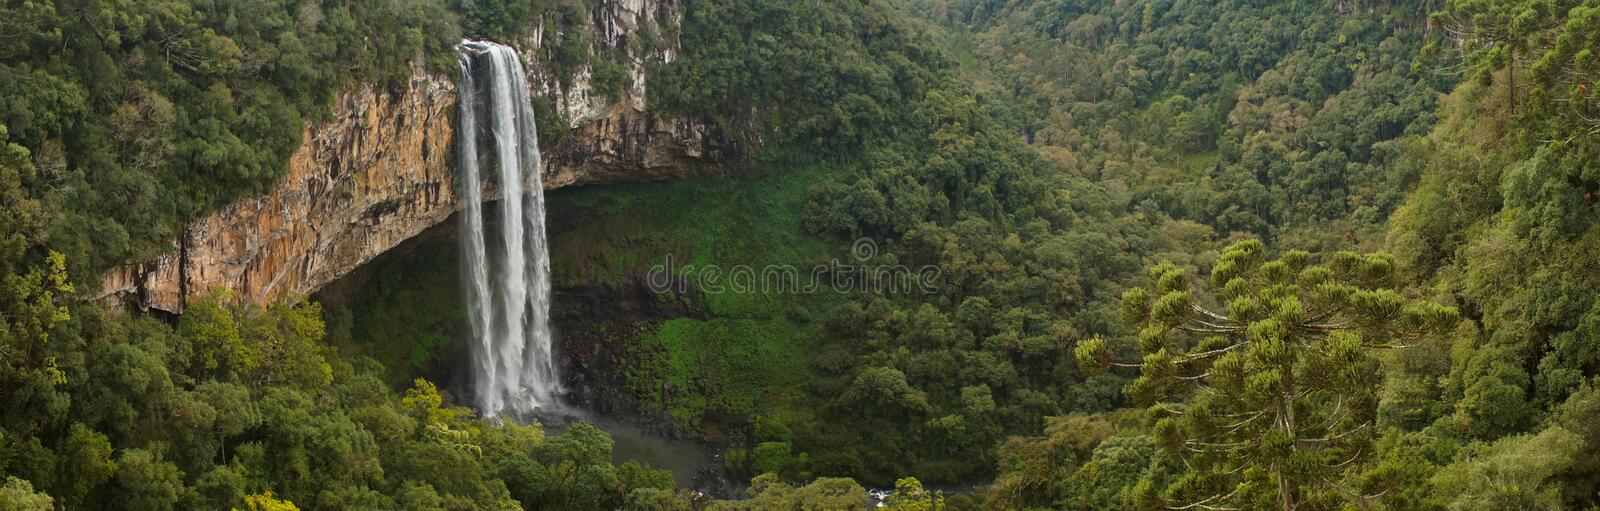 Caracol Falls Waterfall in jungle setting near Canela, Brazil. royalty free stock photos